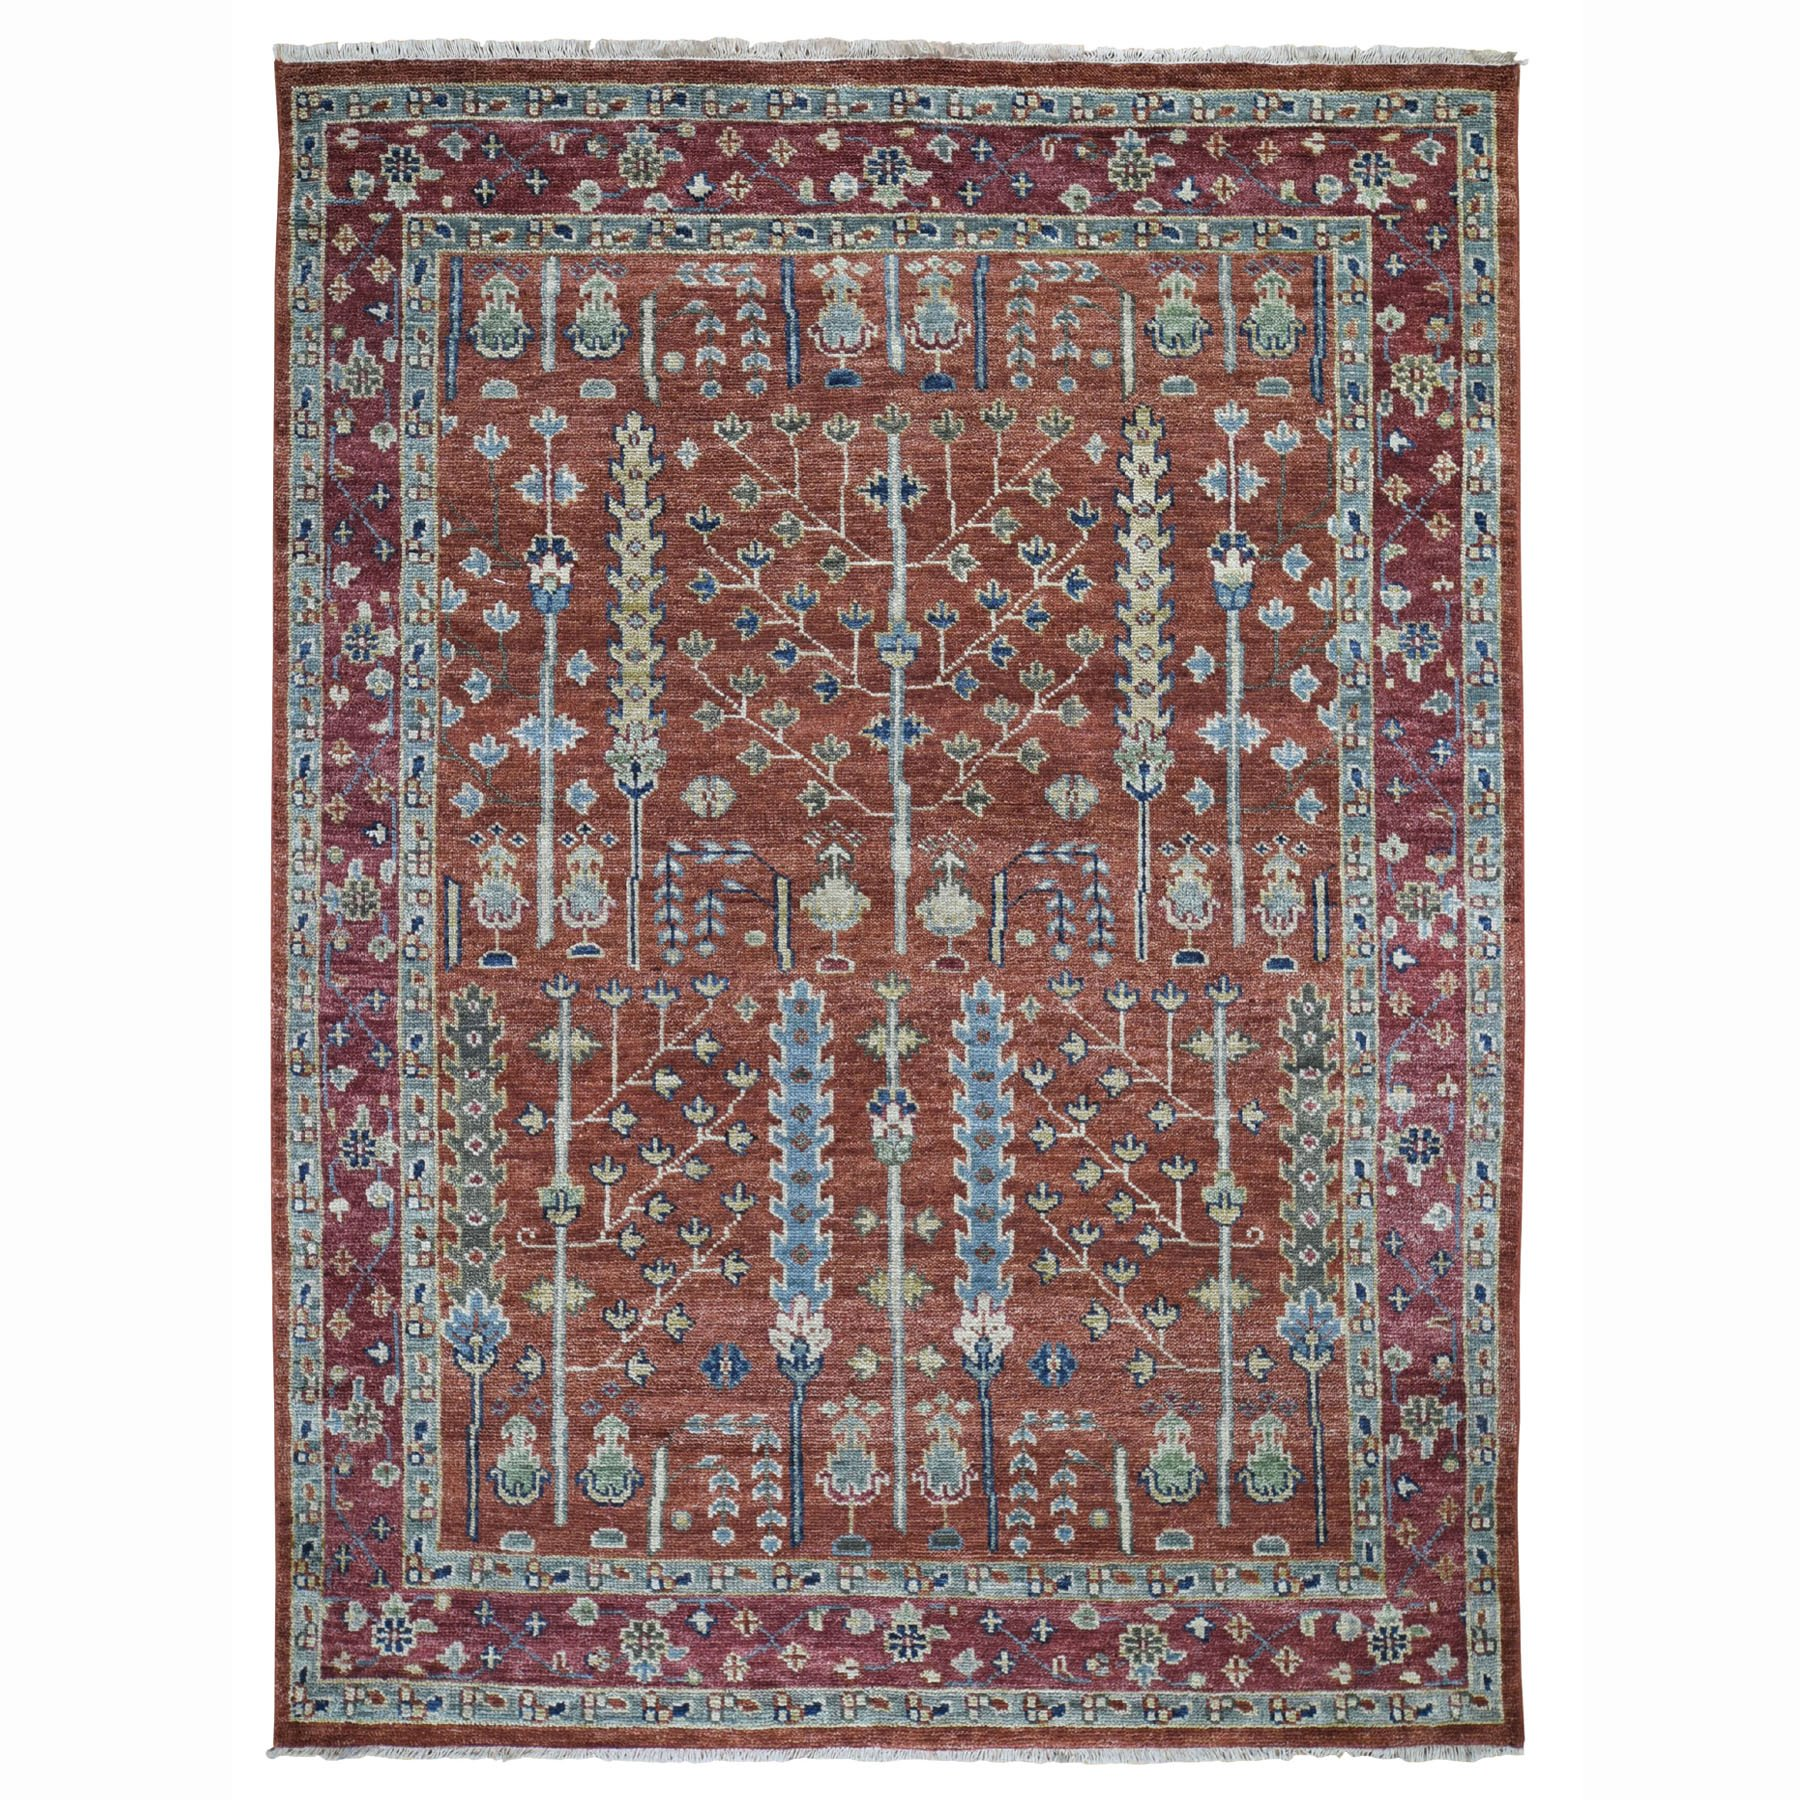 """7'10""""X10'1"""" Red Supple Collection With Tree Design Soft Wool Hand Knotted Oriental Rug moad787b"""